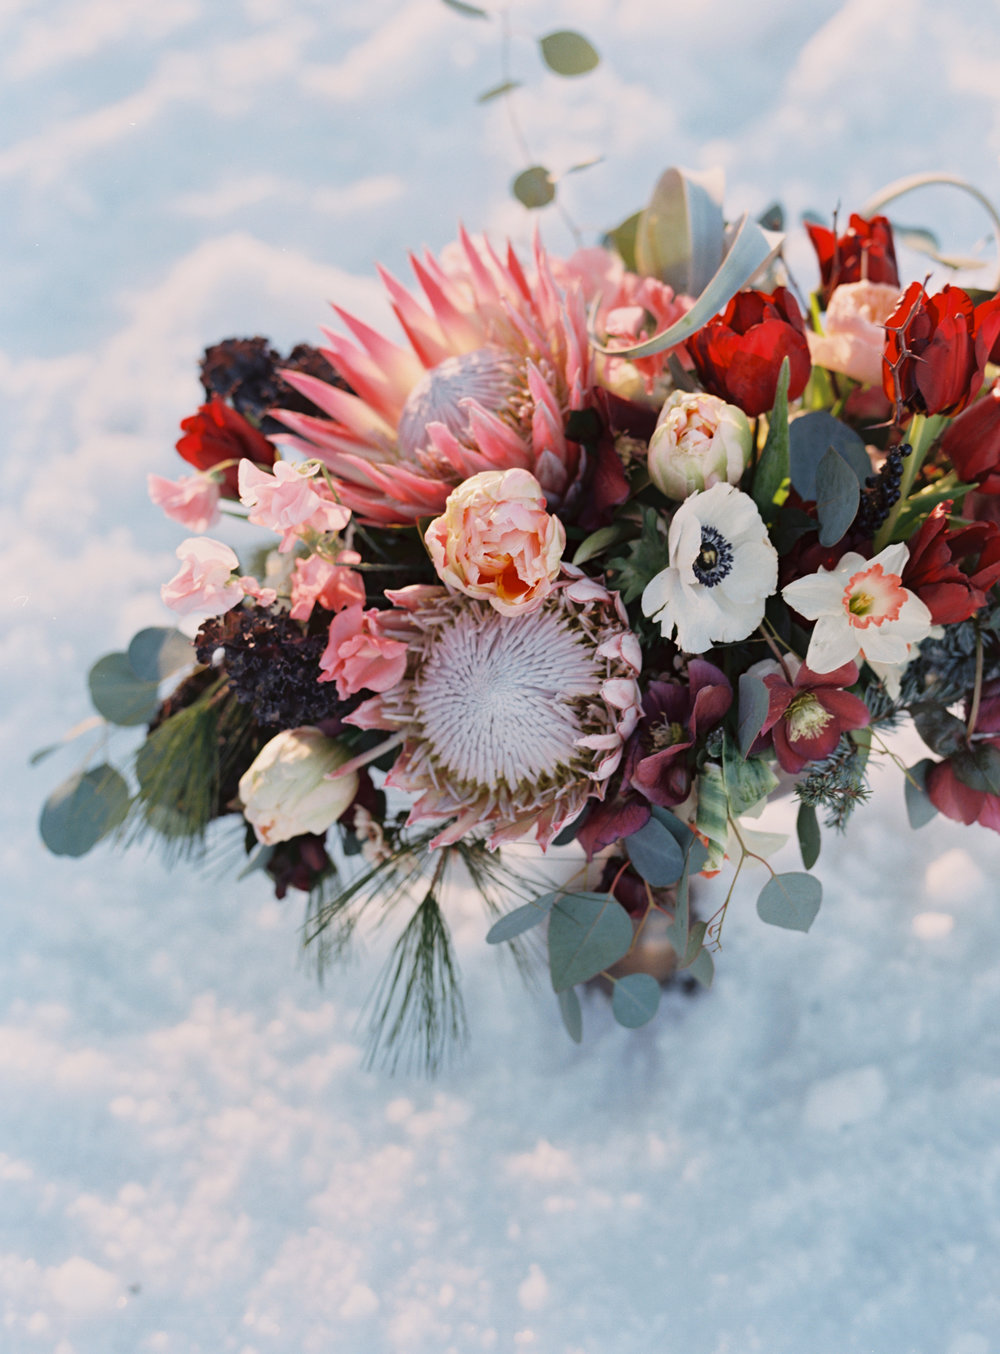 SKI Winter themed wedding ideas copper themed_022.Jpg